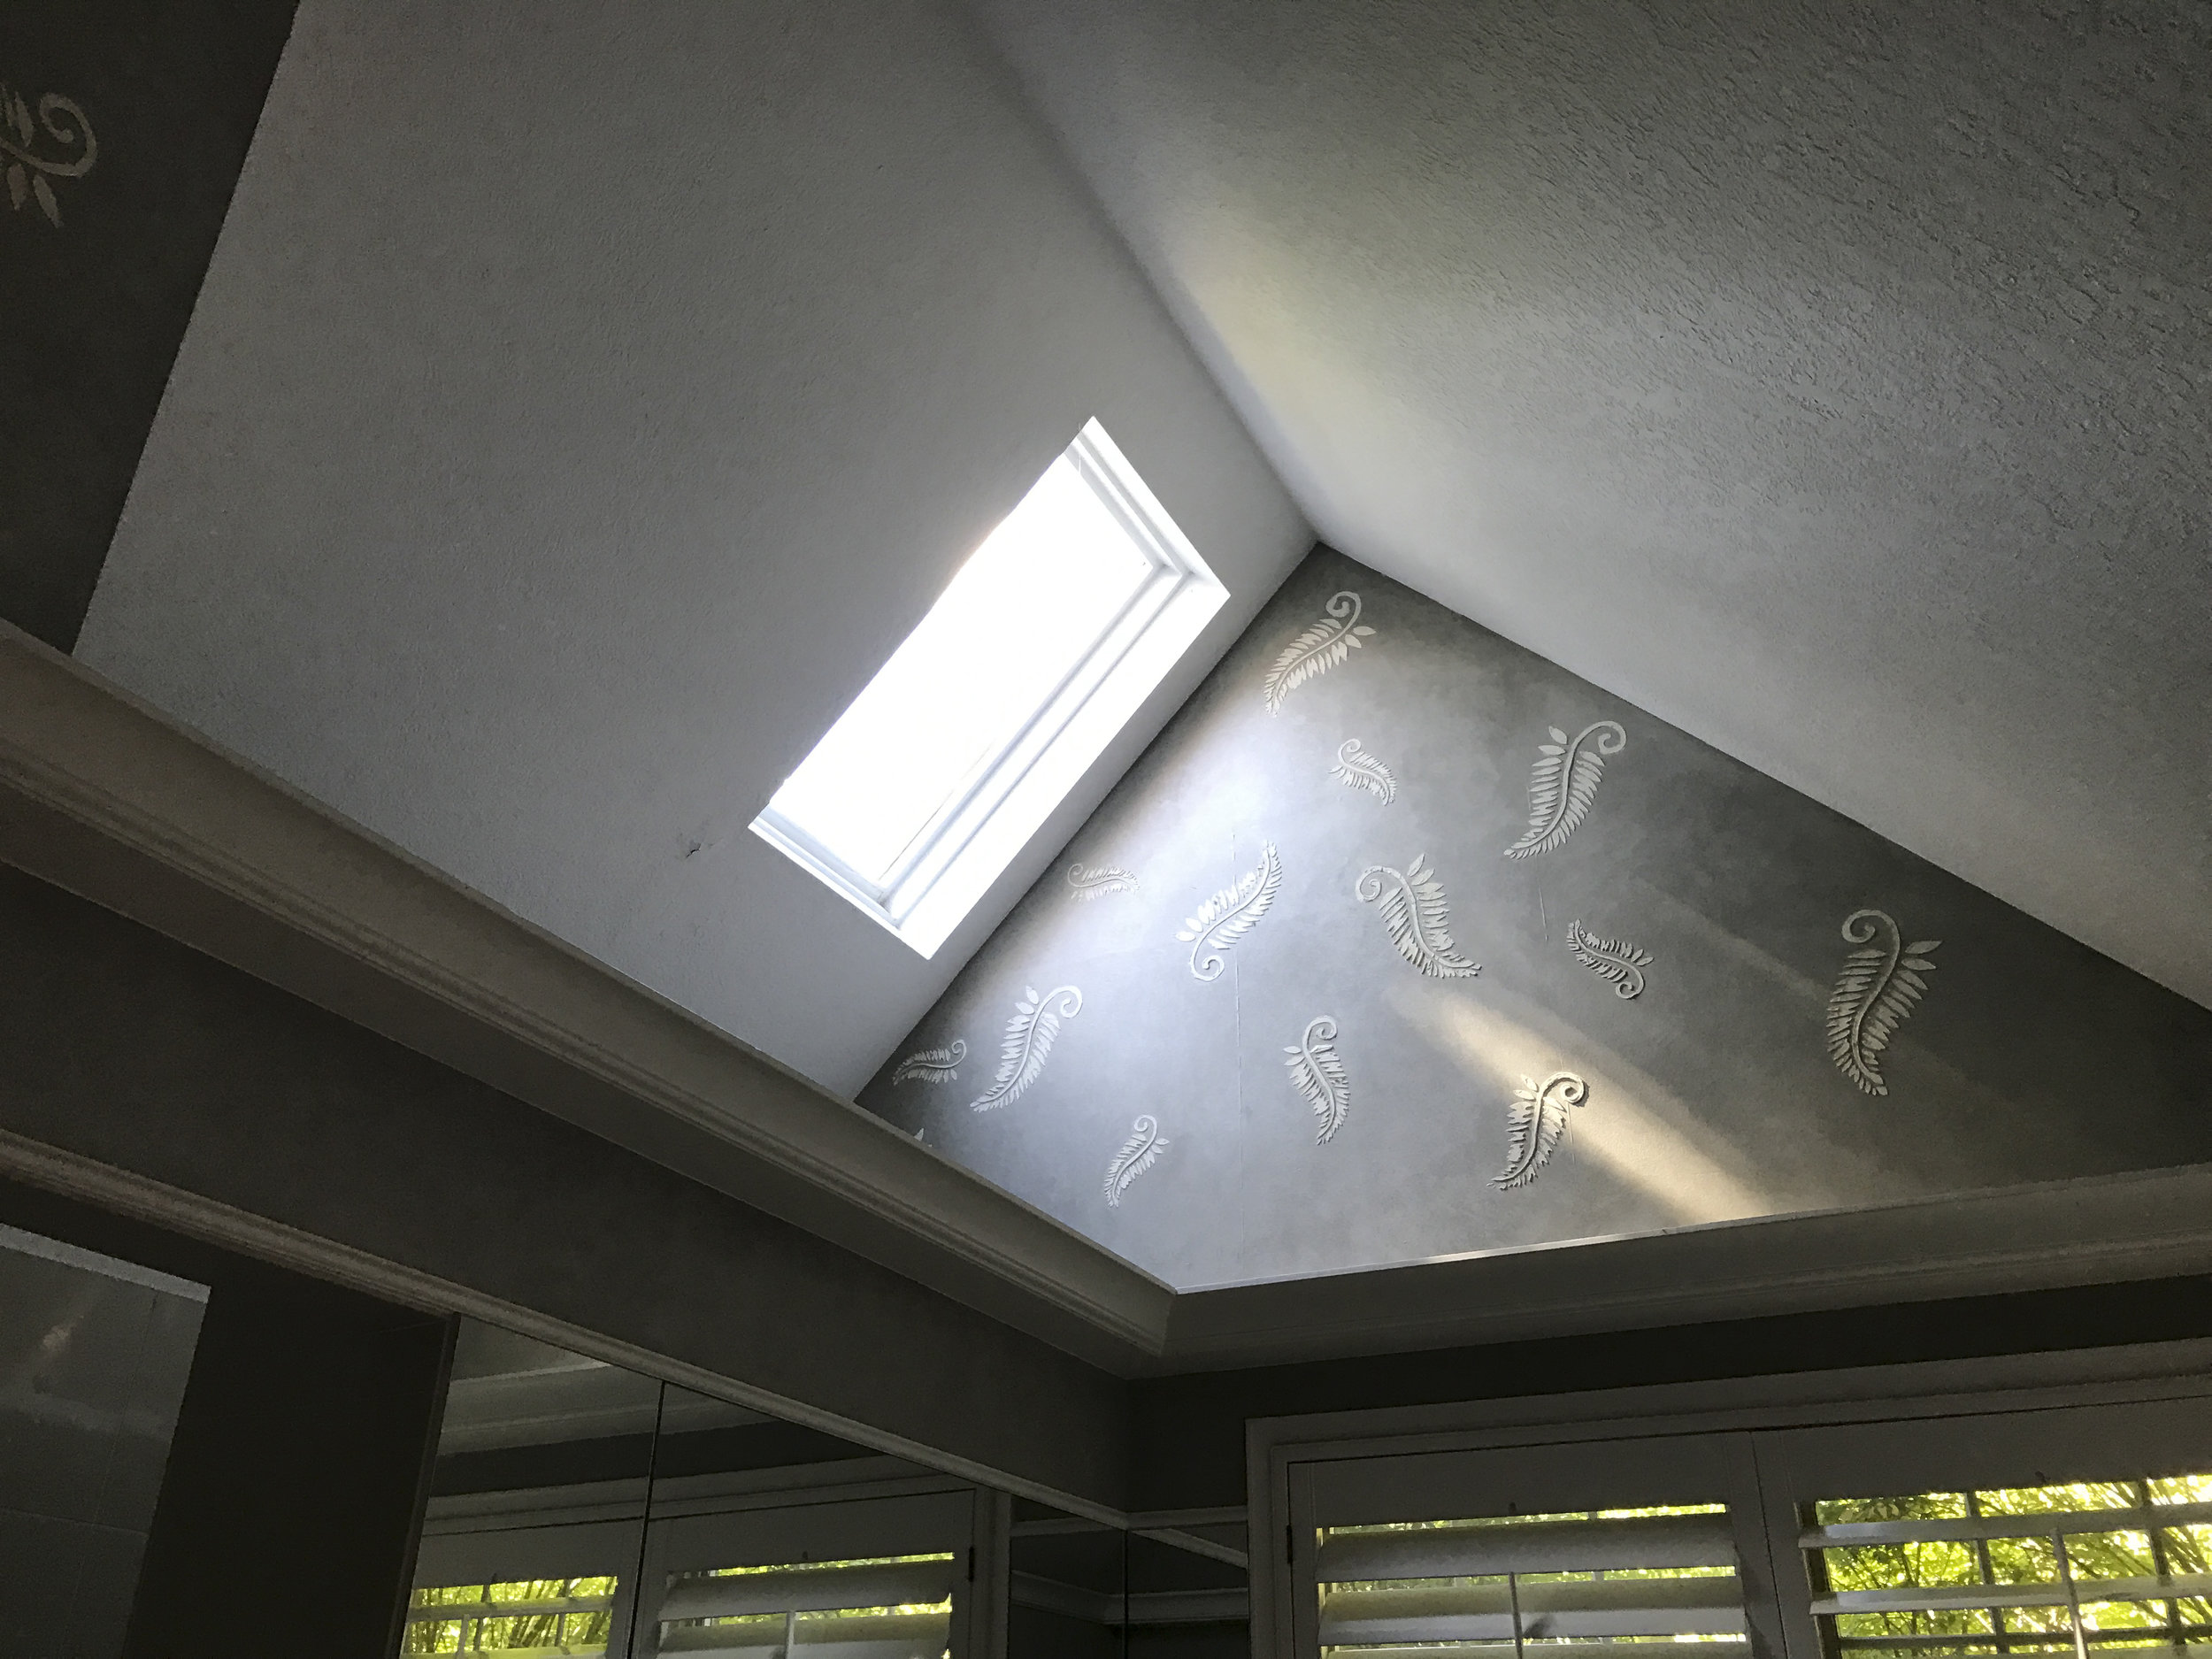 Existing, master bath skylight.  This area will framed to create a ceiling for the shower and project the light shaft to new bathing area.